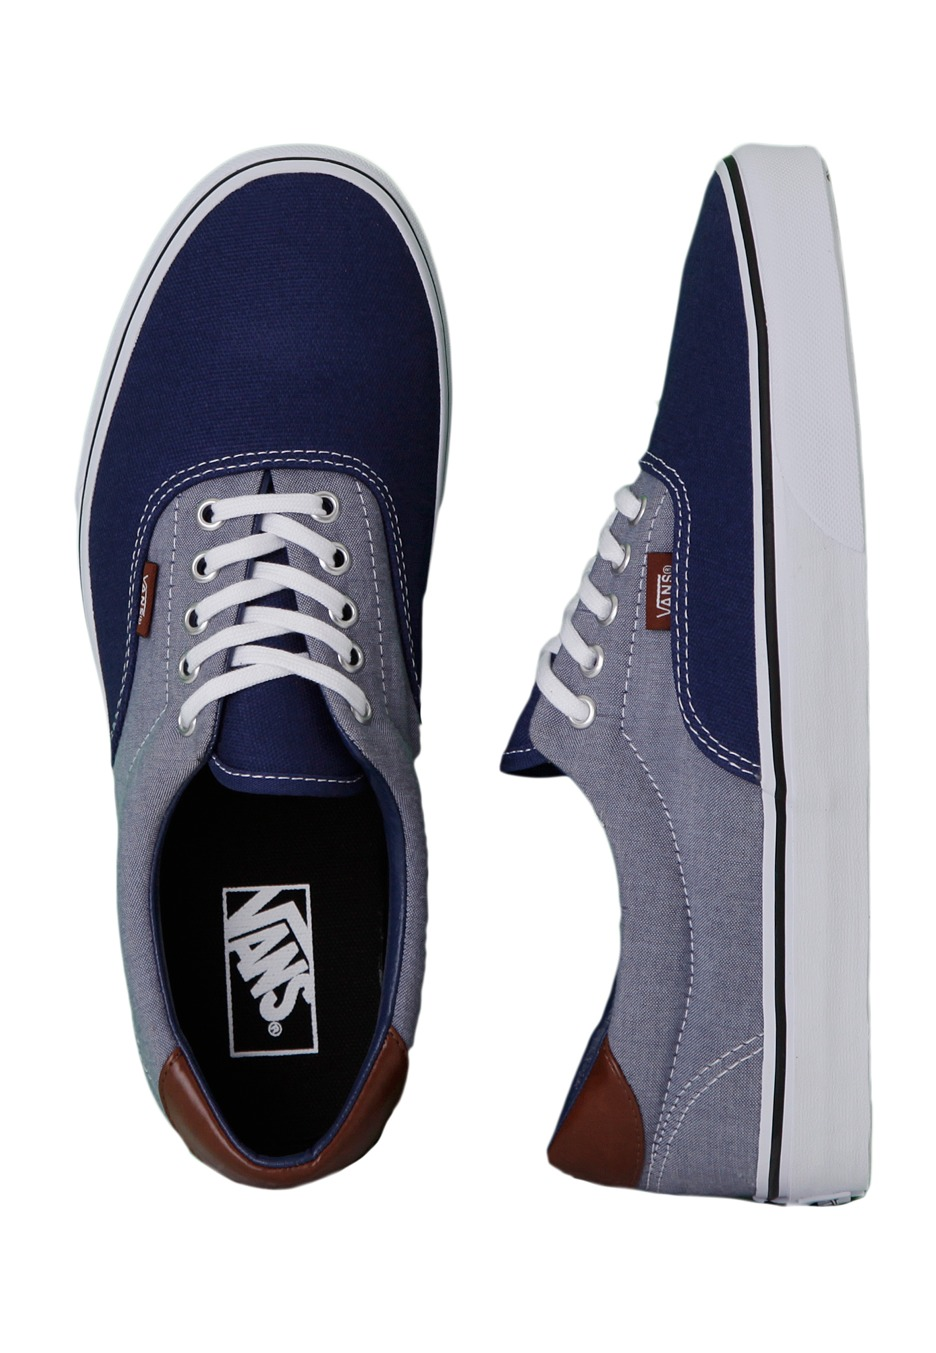 242cb1d125ee Vans - Era 59 Canvas   Chambray Estate Blue - Shoes - Impericon.com UK